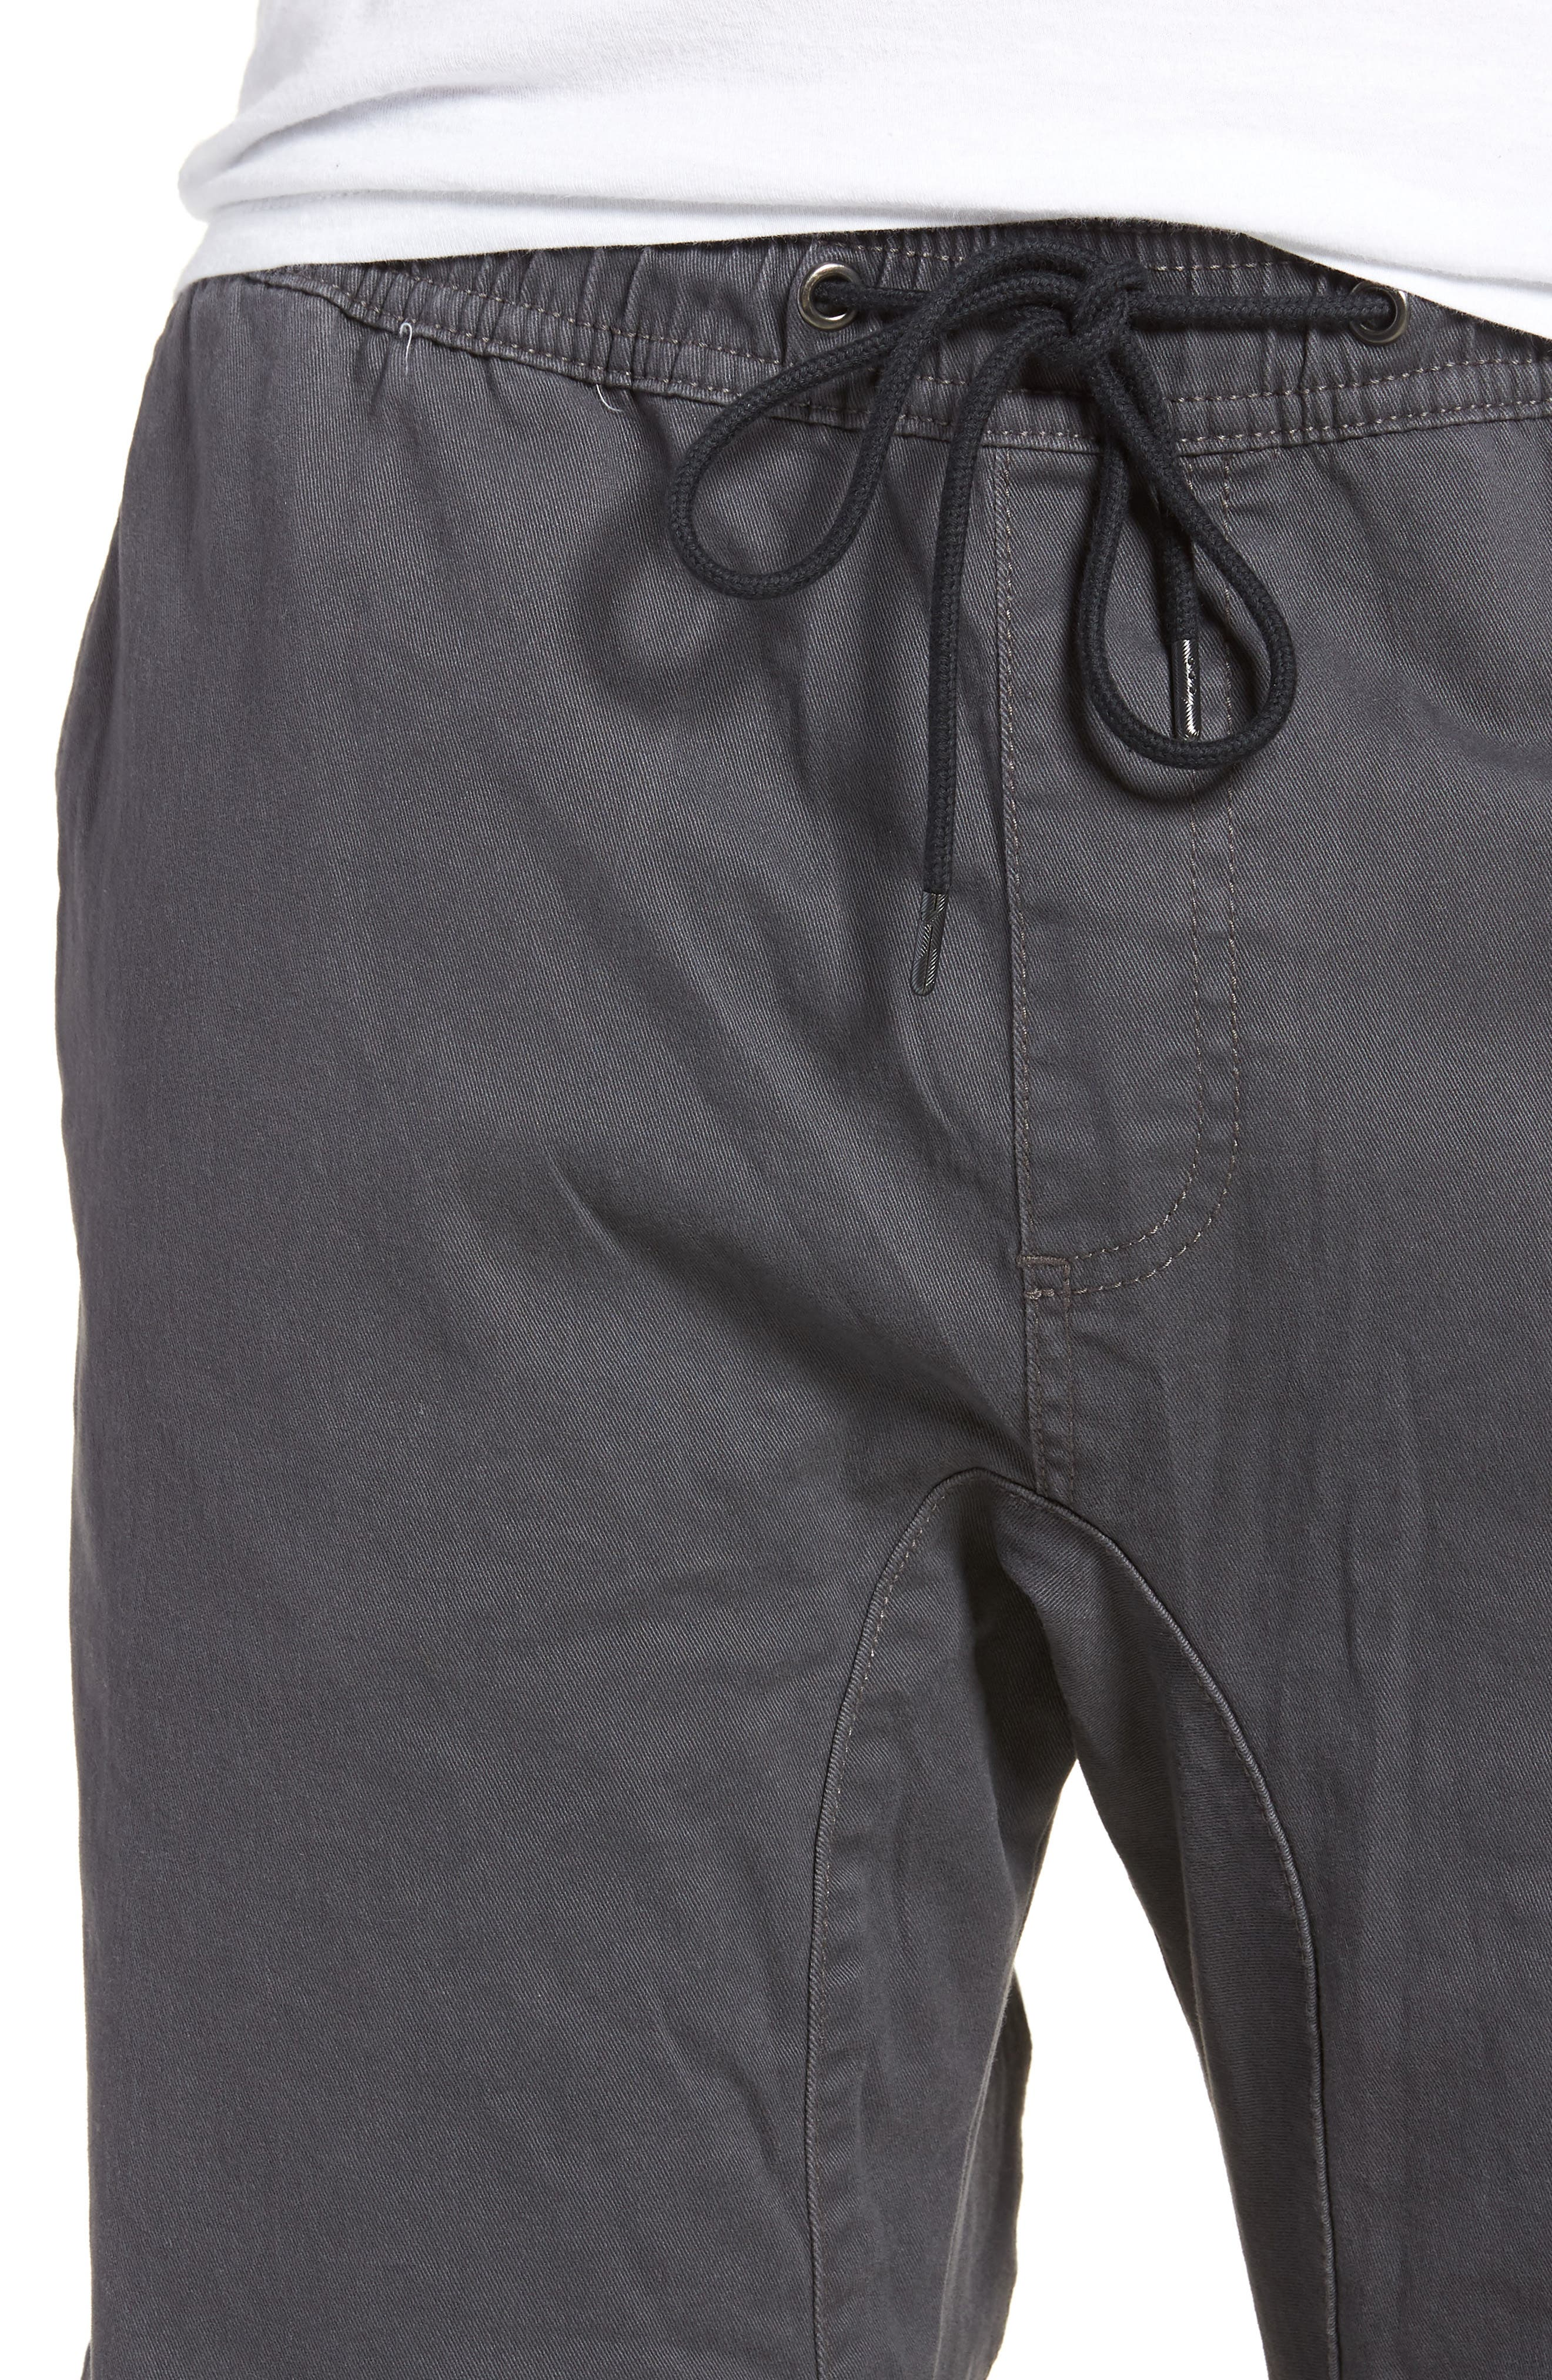 Jogger Pants,                             Alternate thumbnail 18, color,